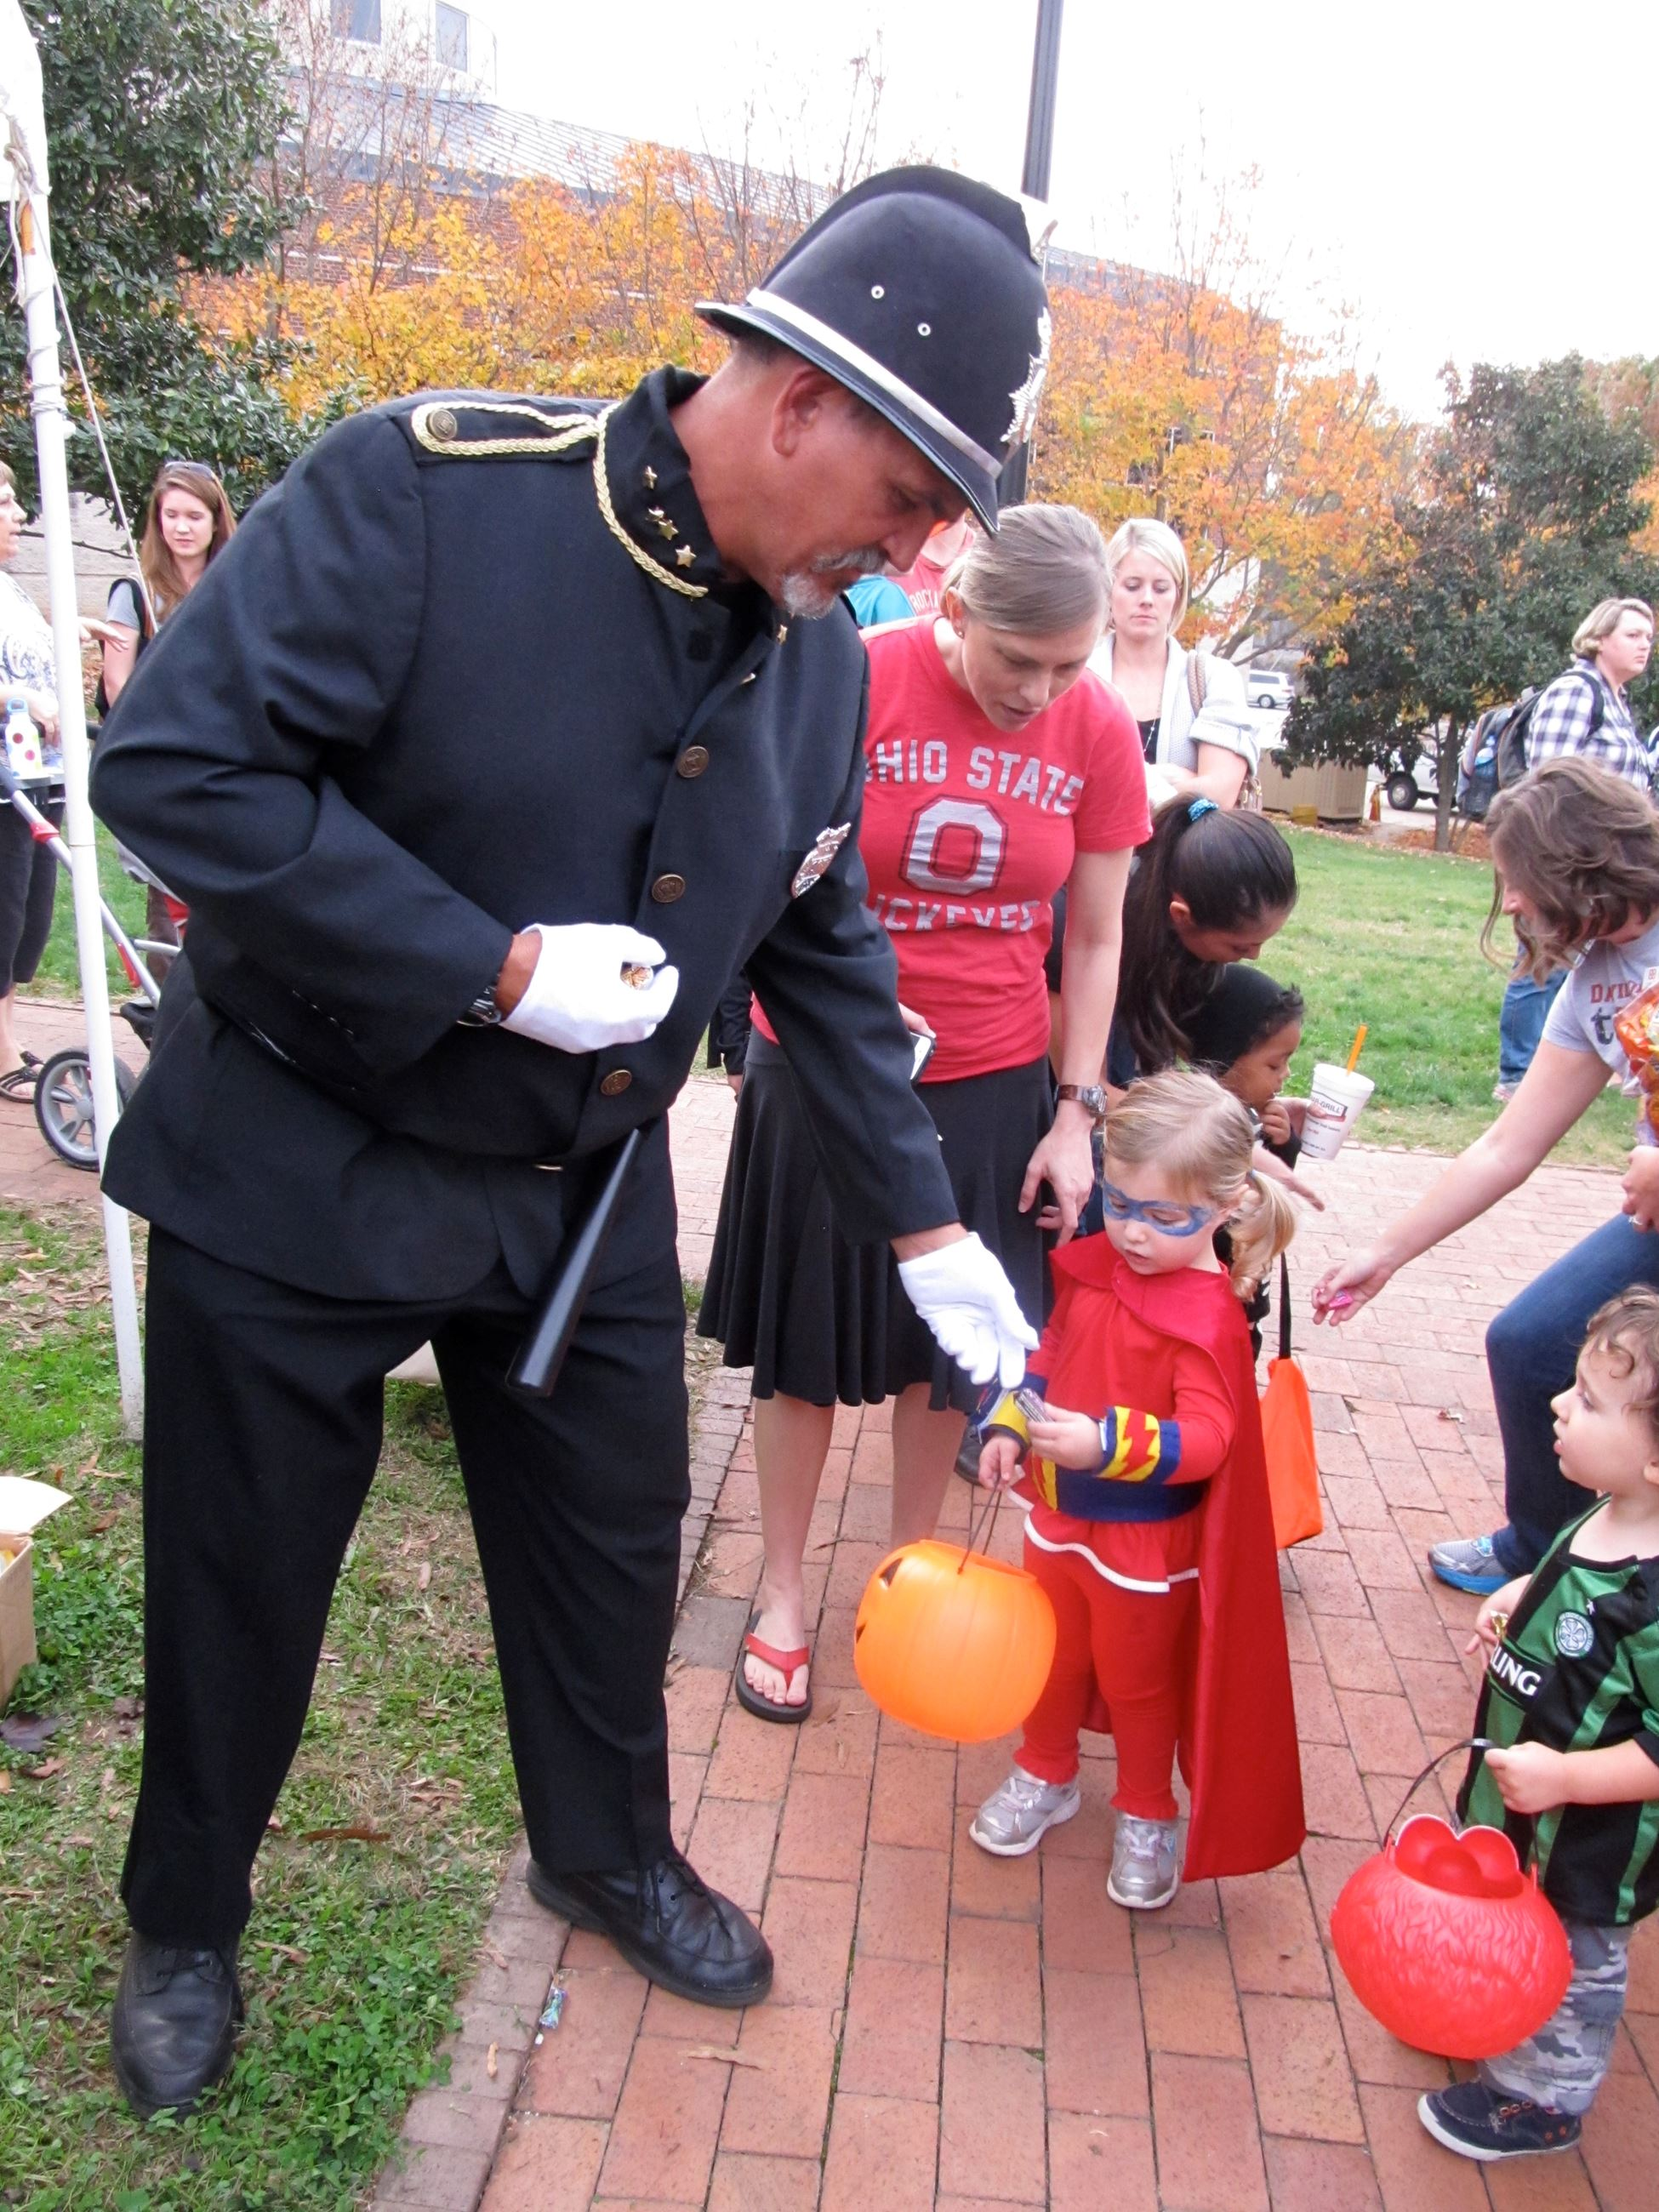 Image Courtesy: Davidson Halloween March